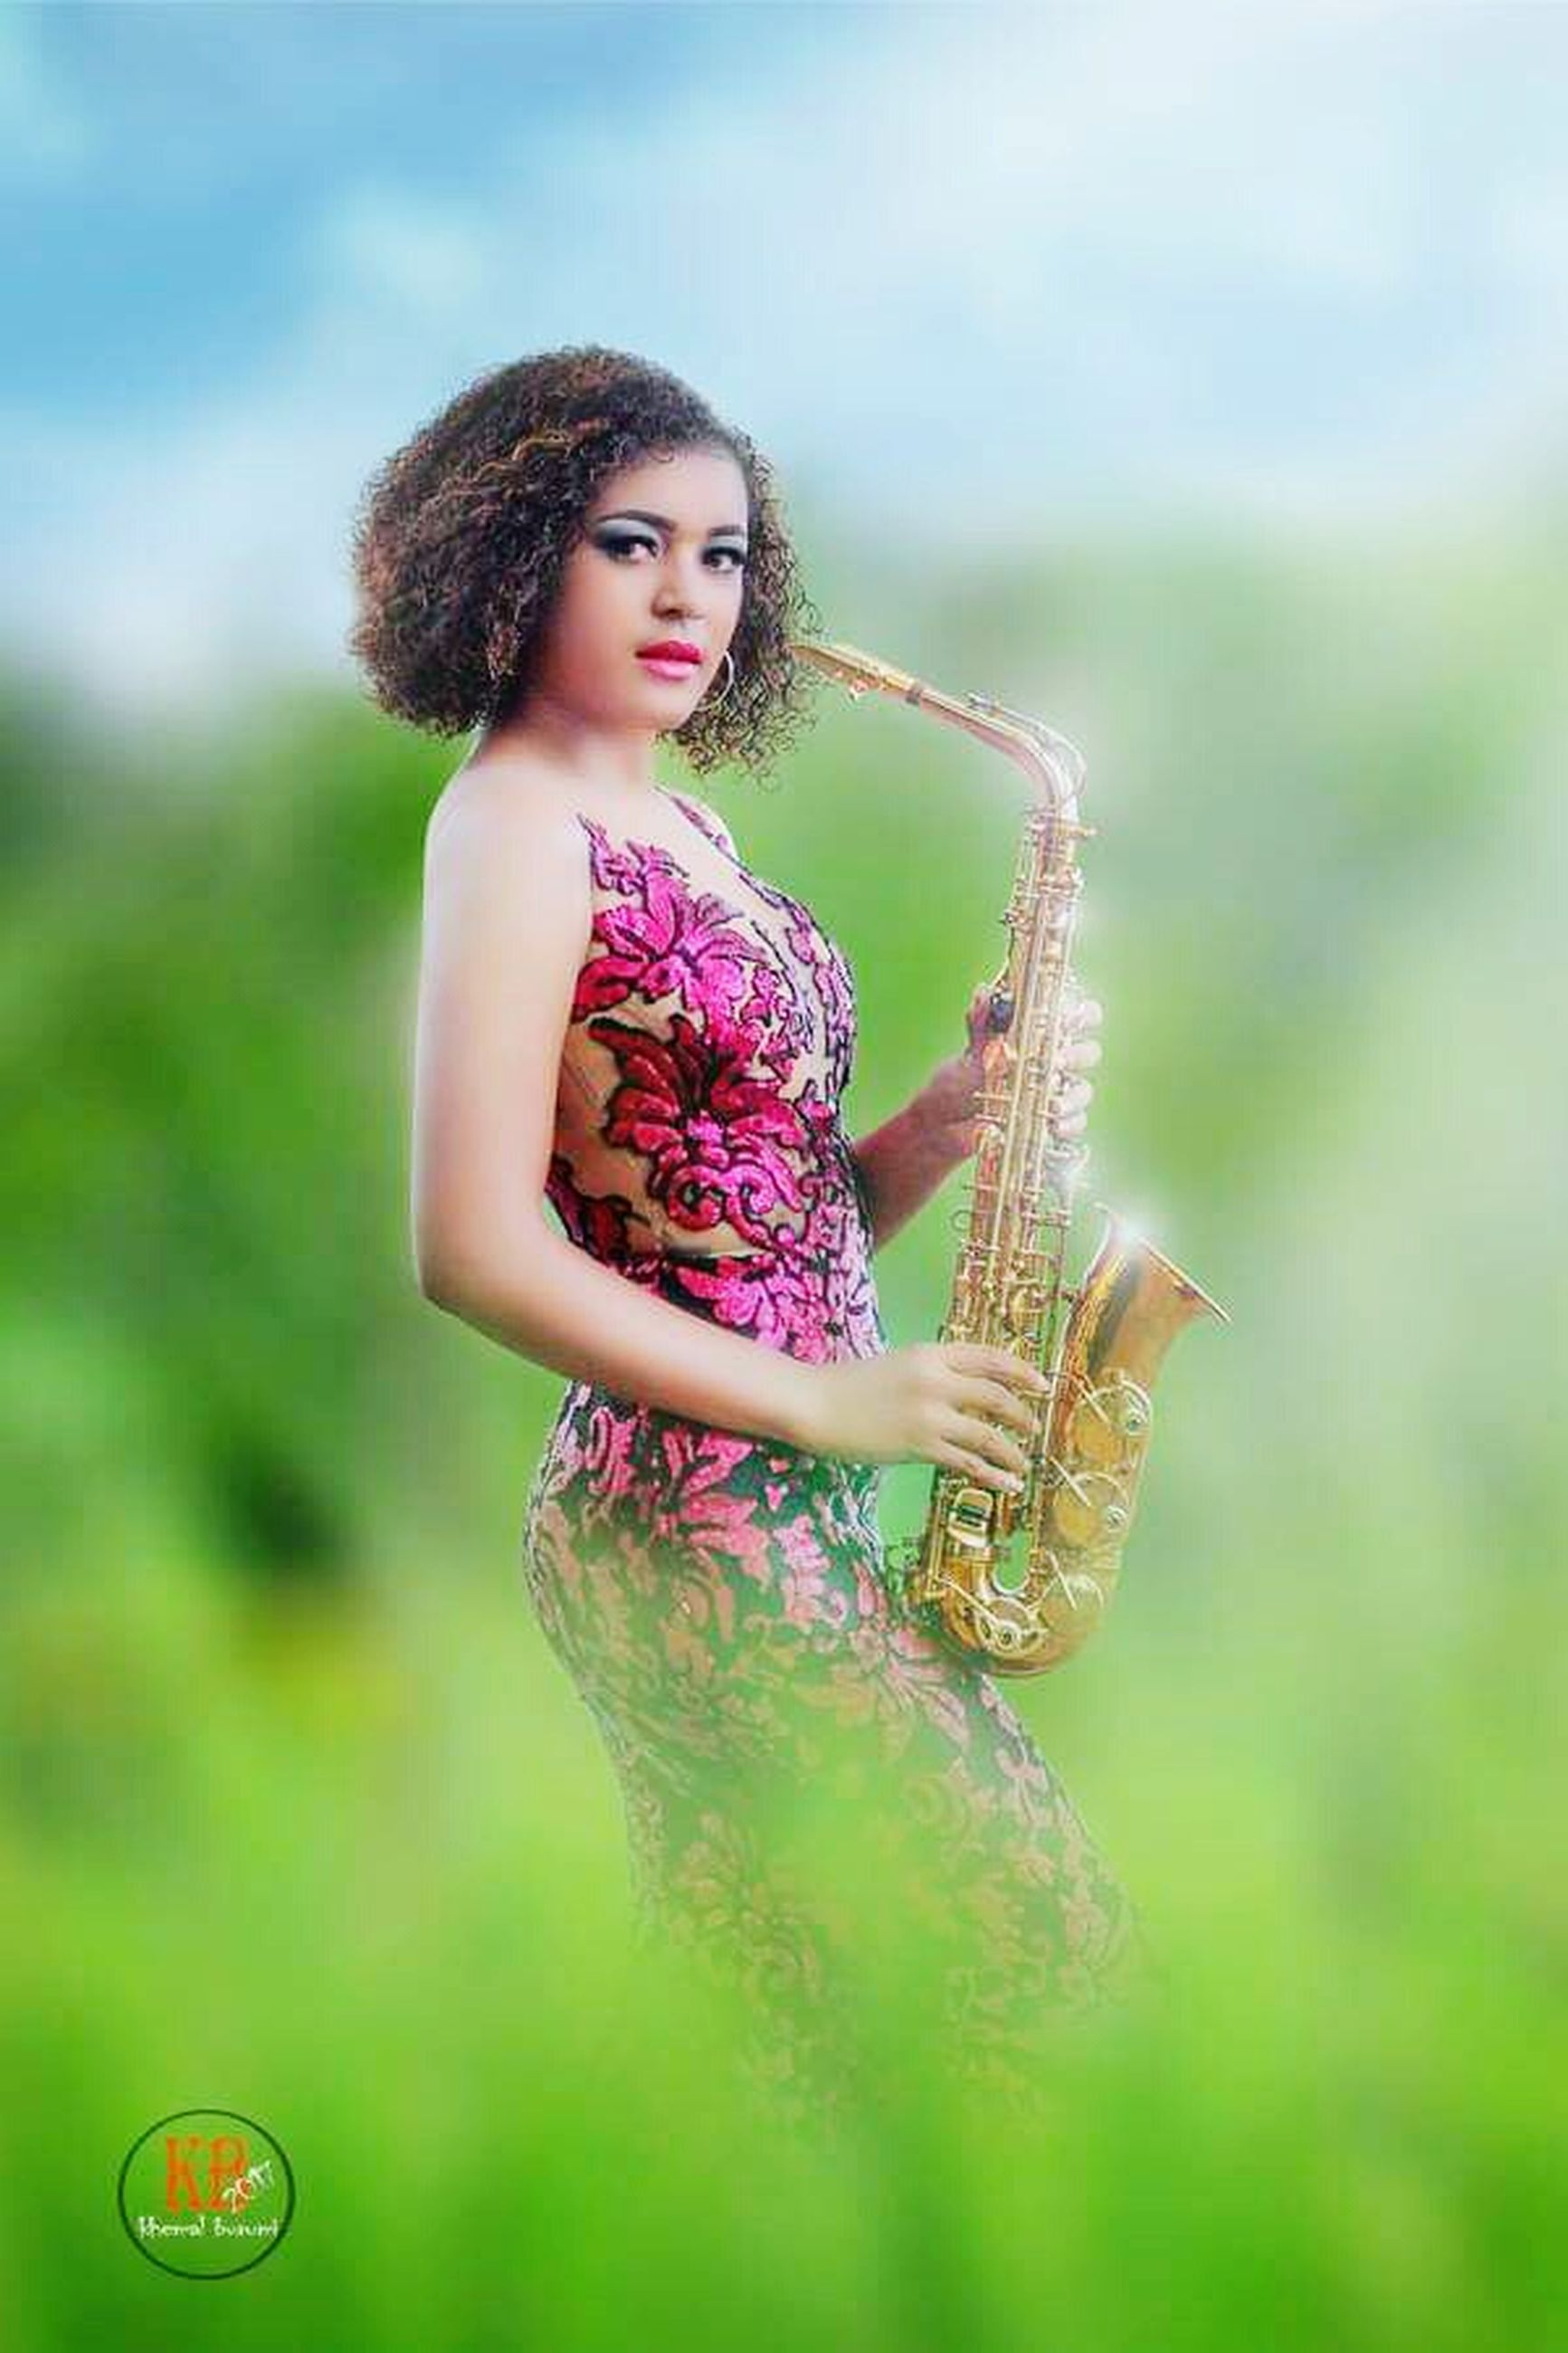 musical instrument, music, one person, beauty, arts culture and entertainment, musician, young adult, adult, clothing, playing, women, beautiful woman, artist, three quarter length, standing, plant, fashion, curly hair, portrait, young women, hair, hairstyle, skill, outdoors